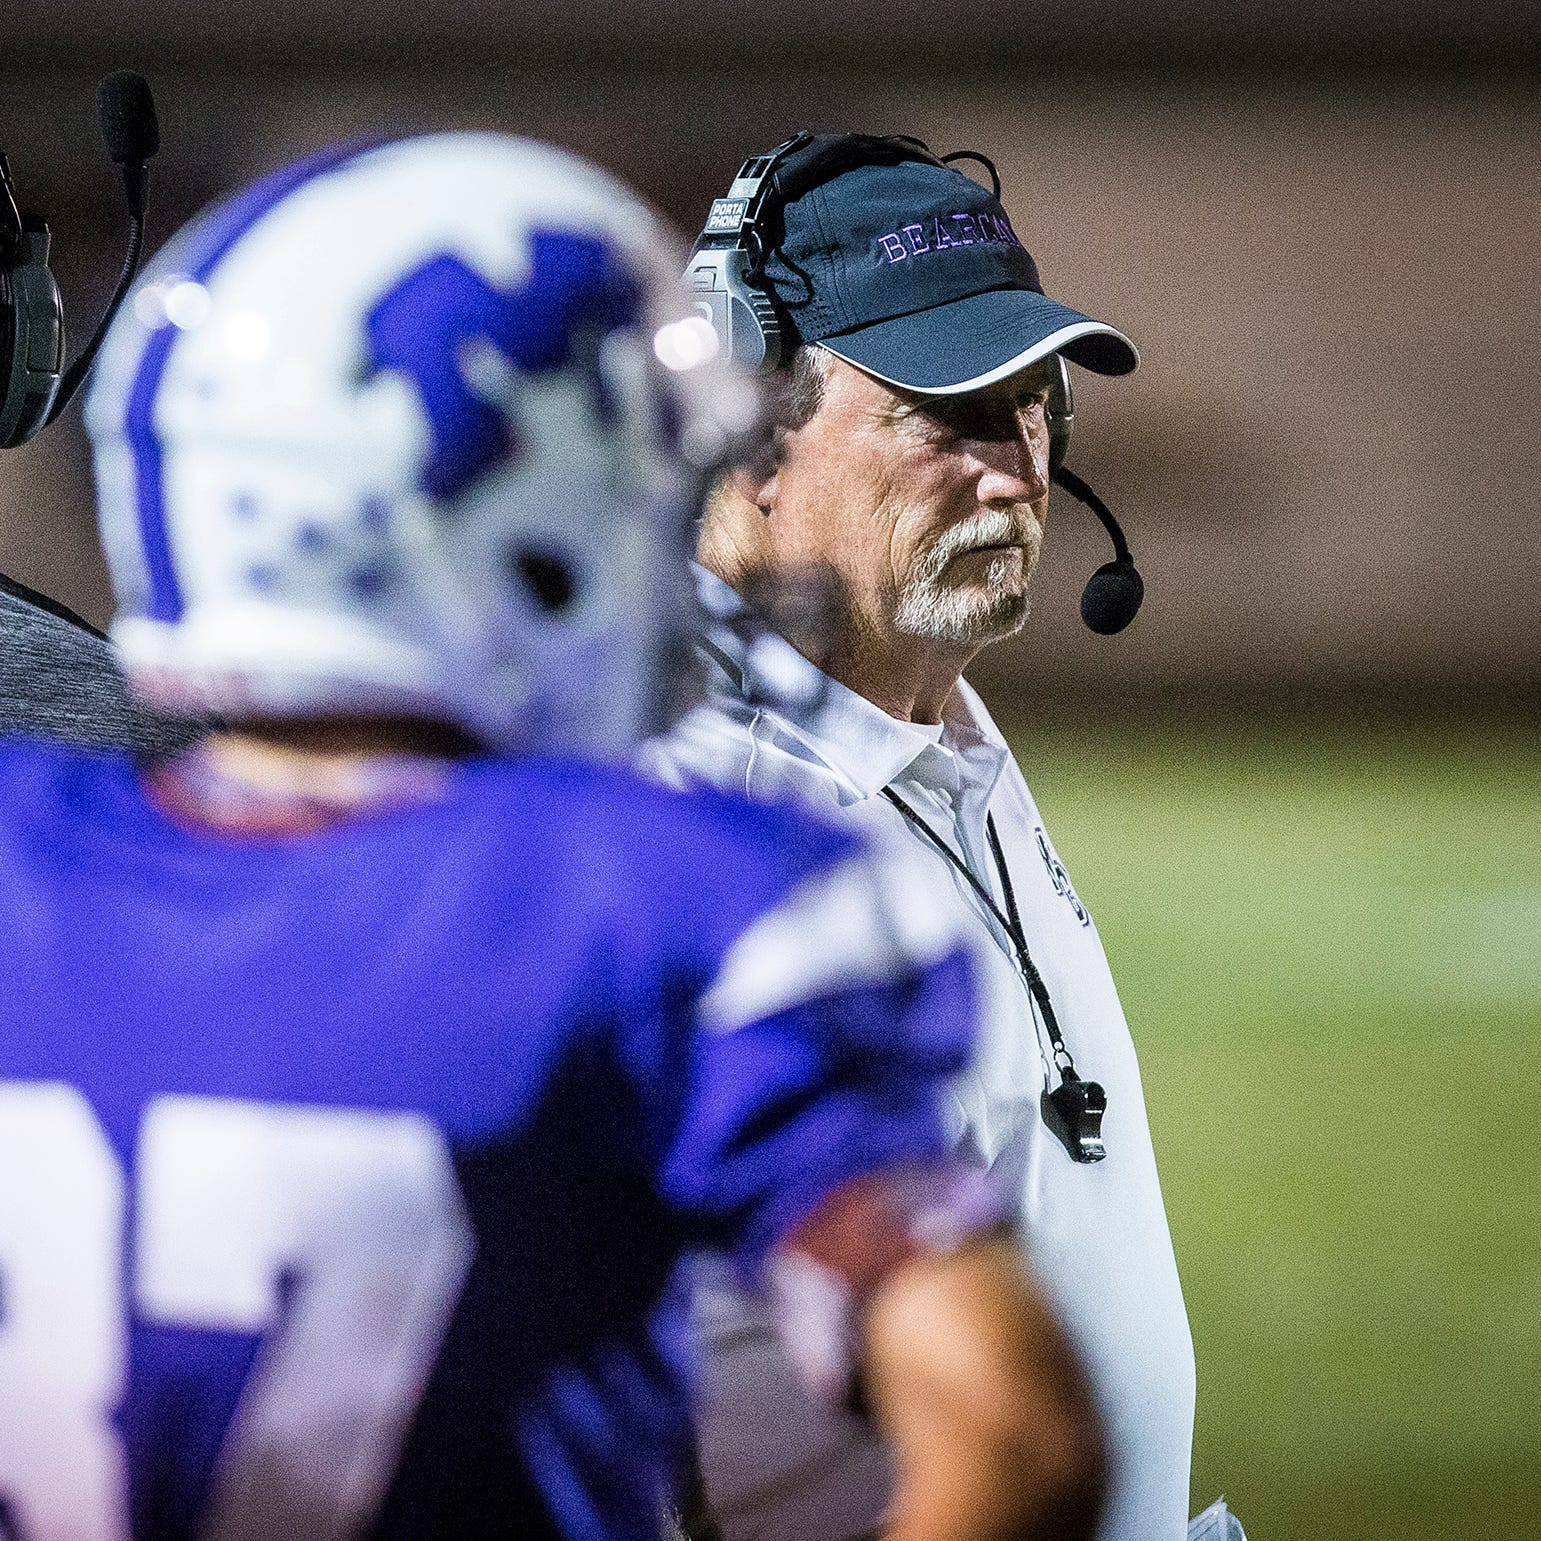 Muncie Central football coach steps down after two seasons